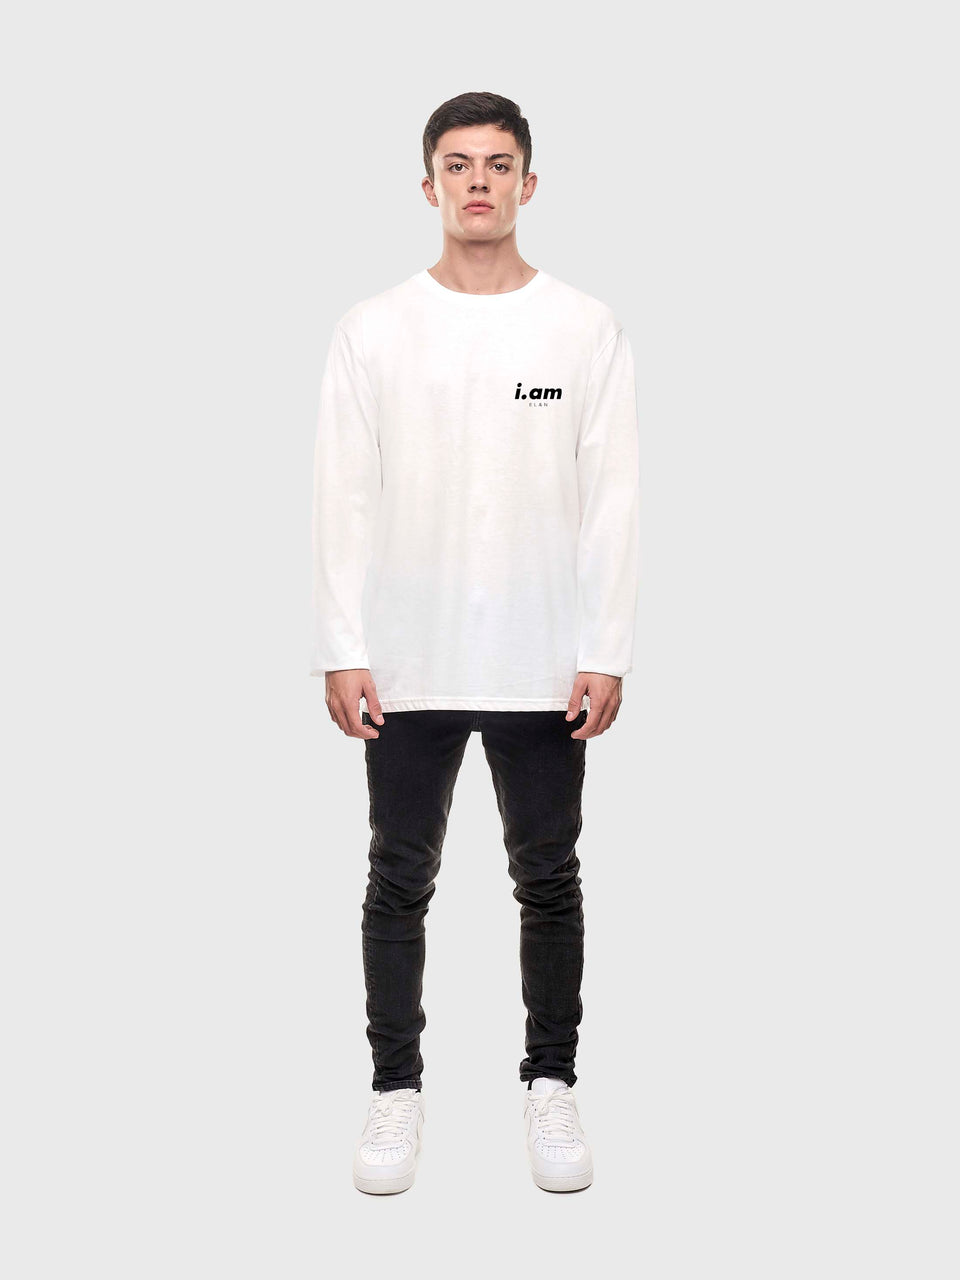 Not a copy - White - Unisex long sleeve T